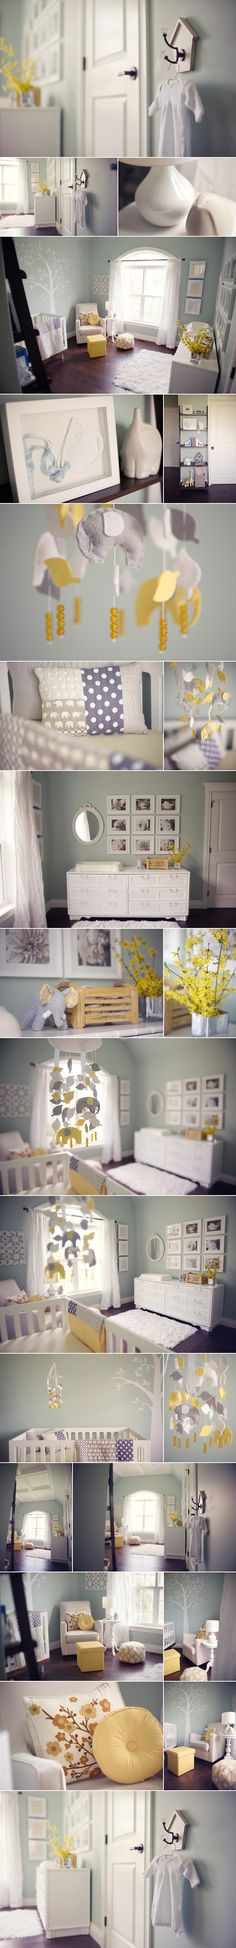 gray yellow kids room